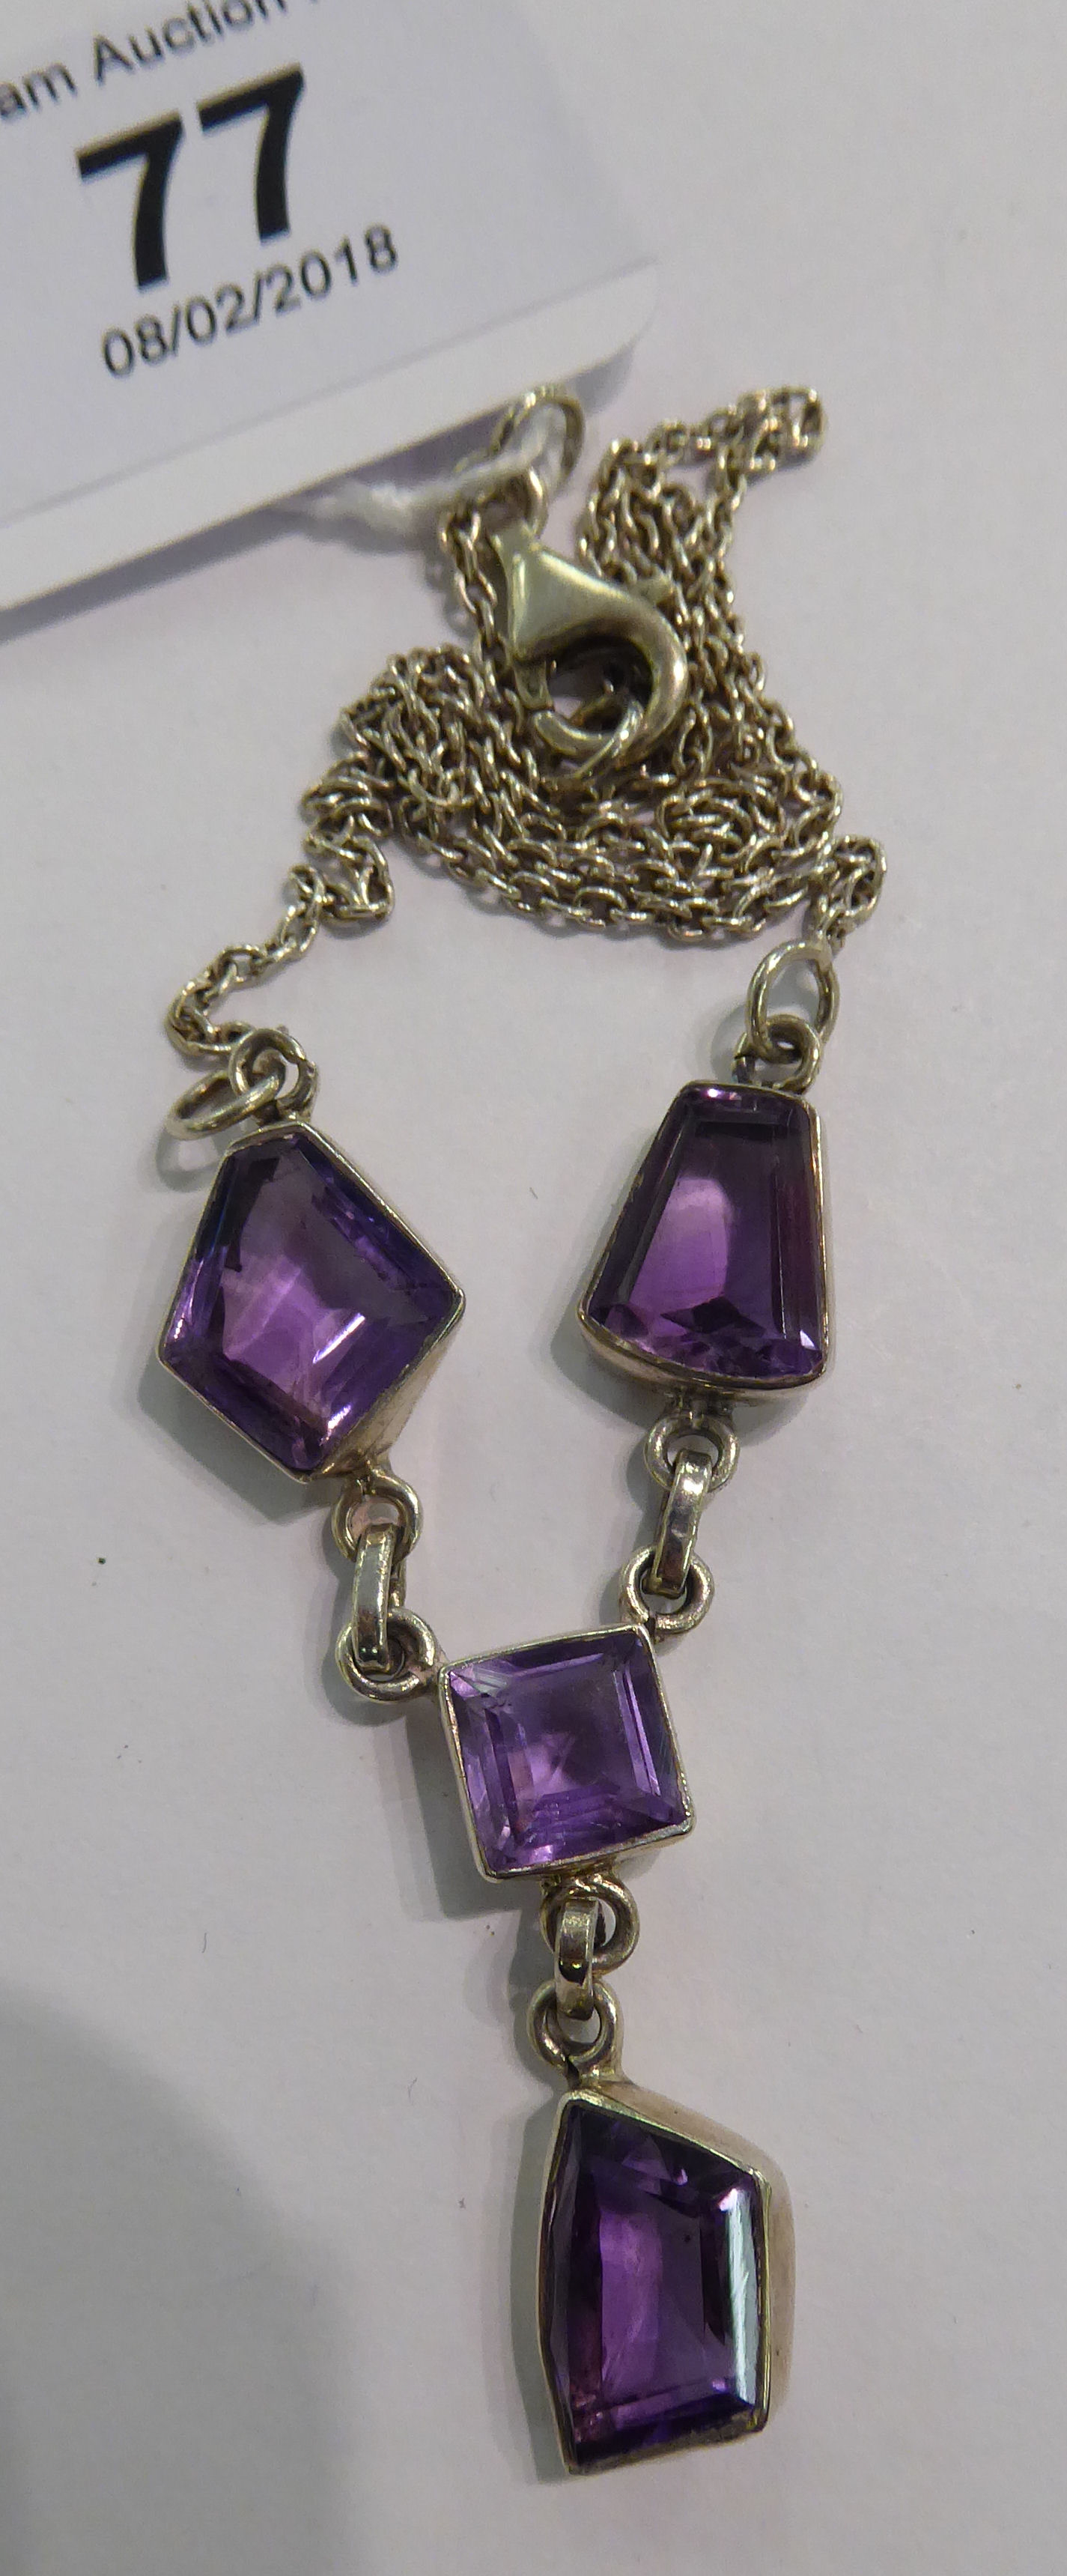 Lot 77 - A silver coloured metal necklace,